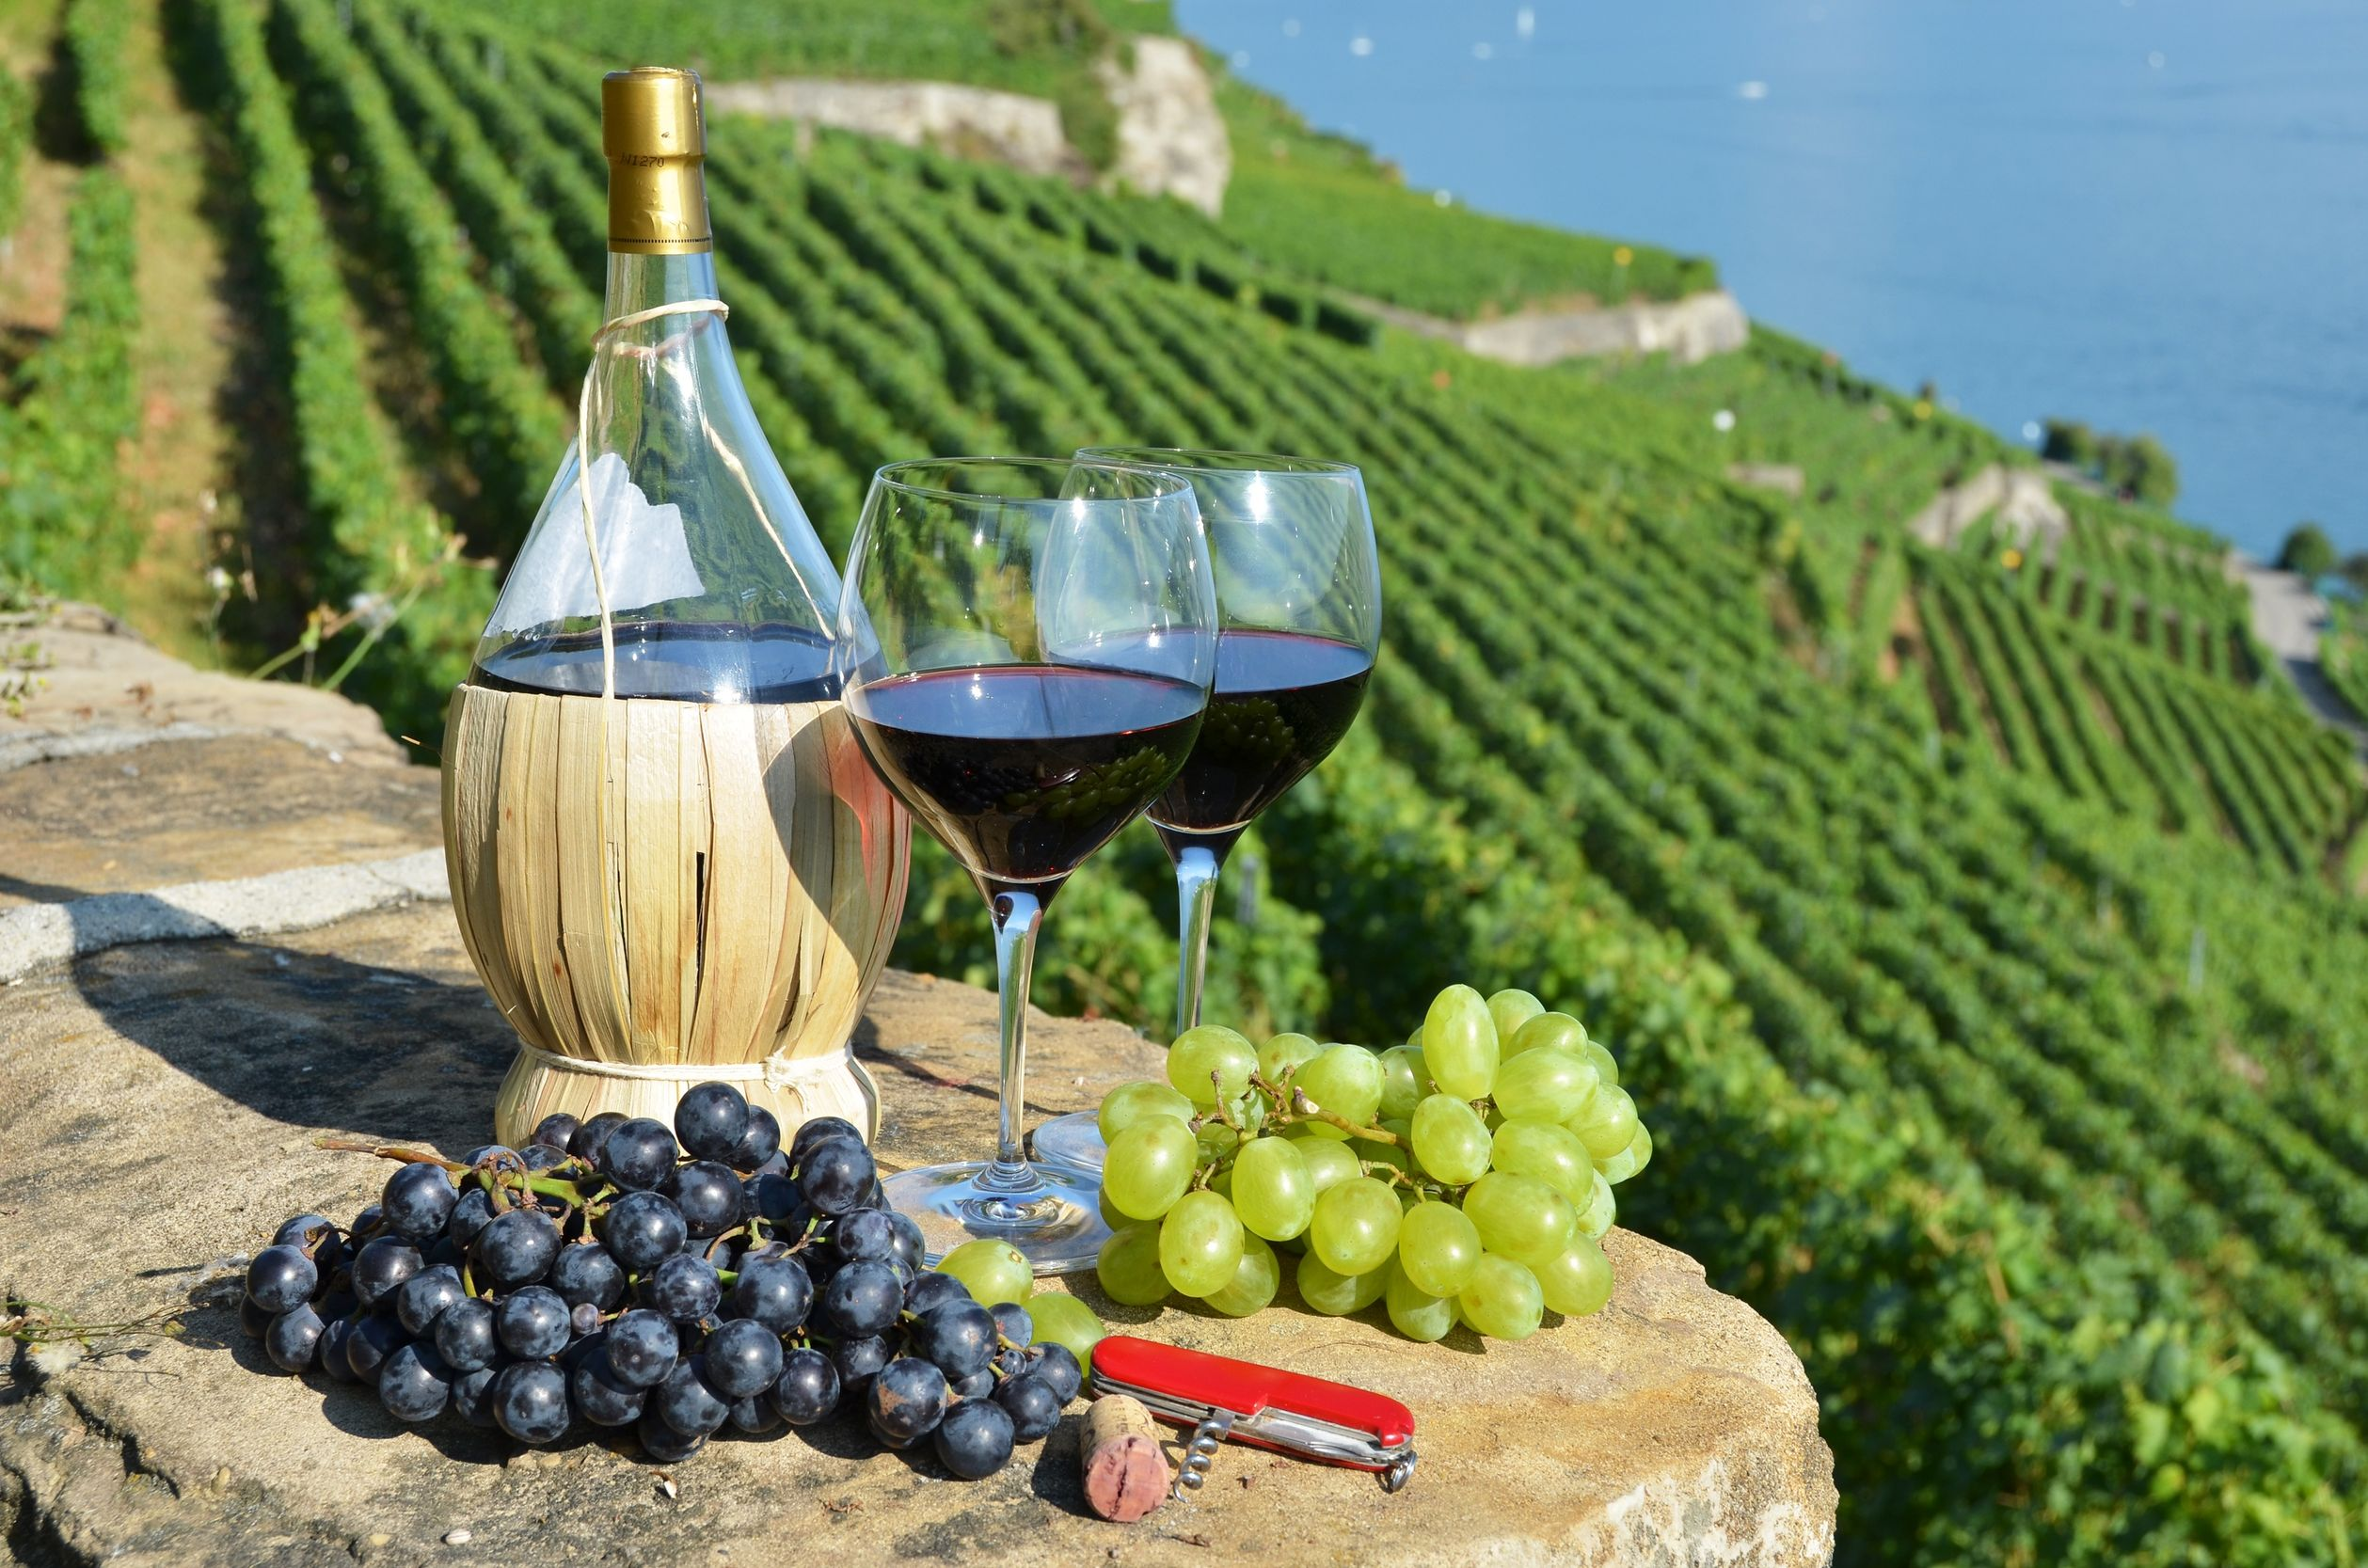 Top 5 wine regions of Italy